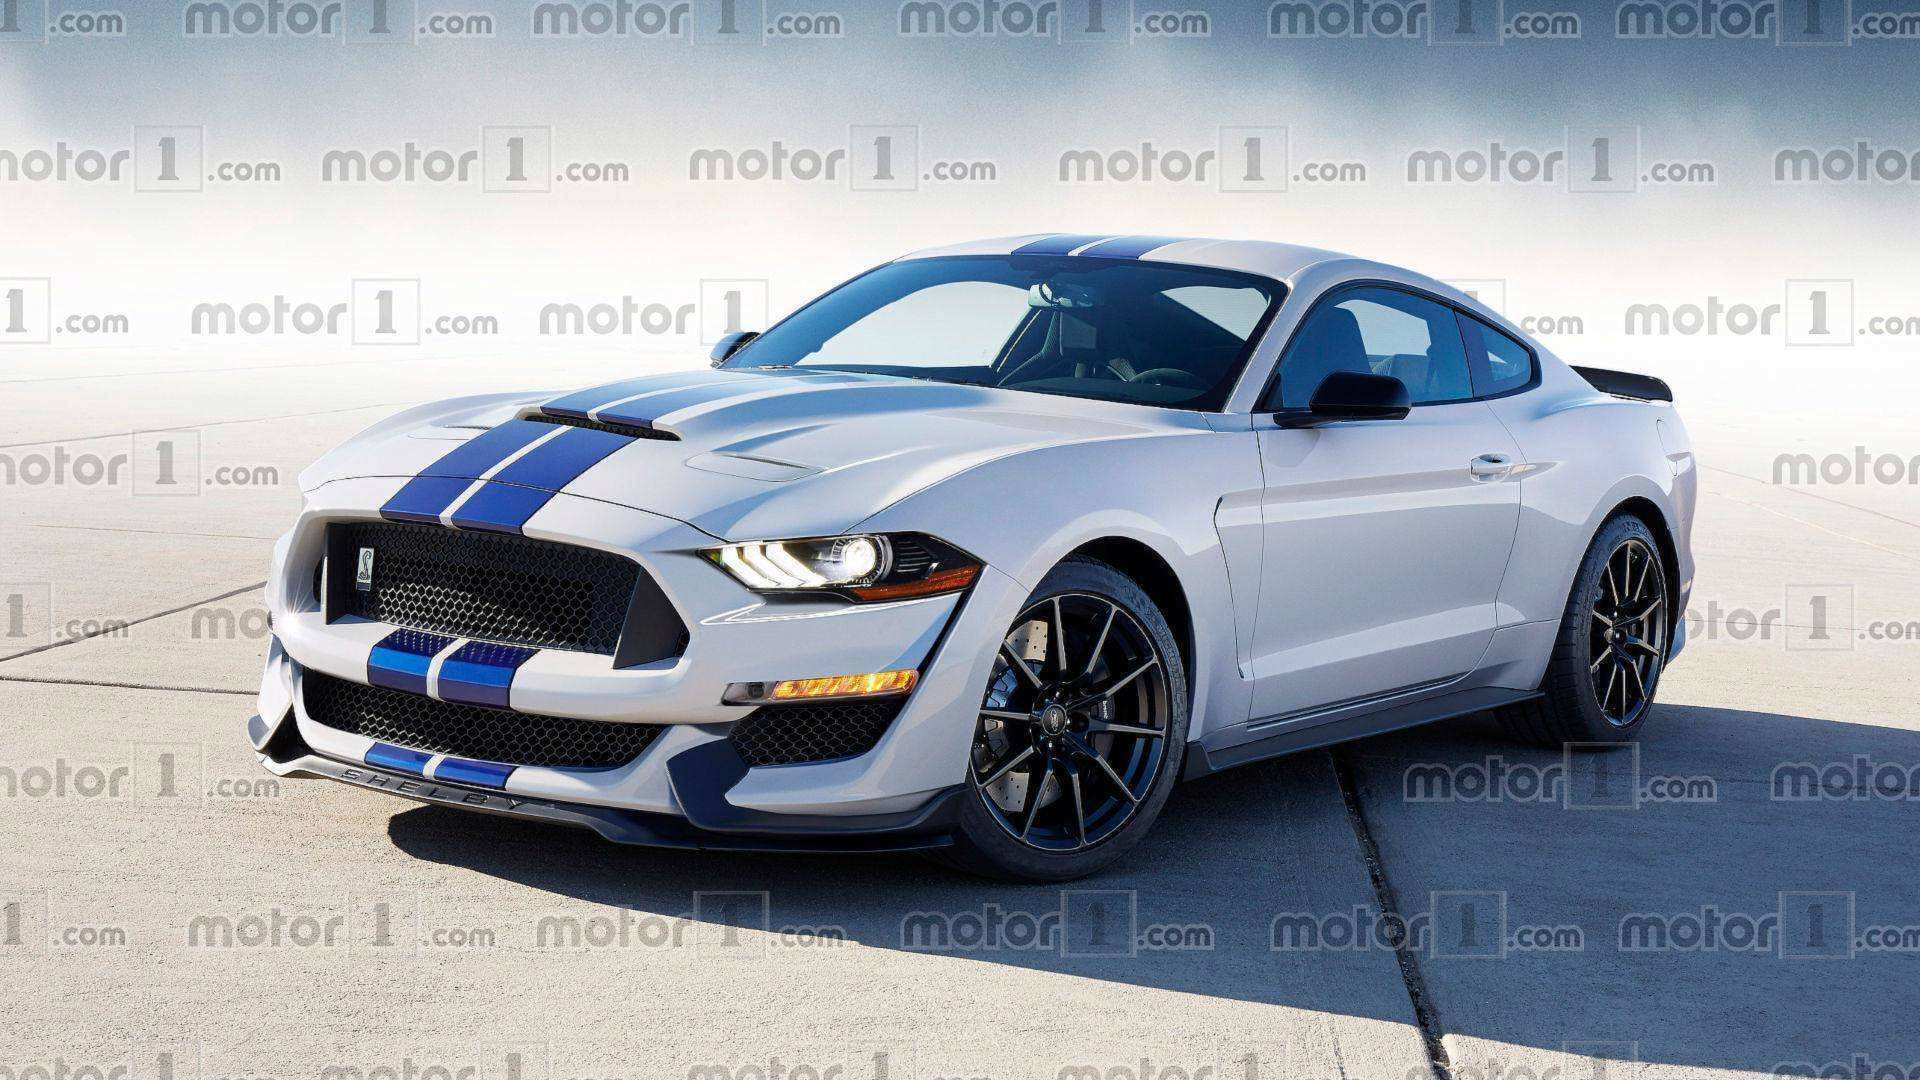 61 New Ford Mustang Gt500 Shelby 2020 Price And Release Date